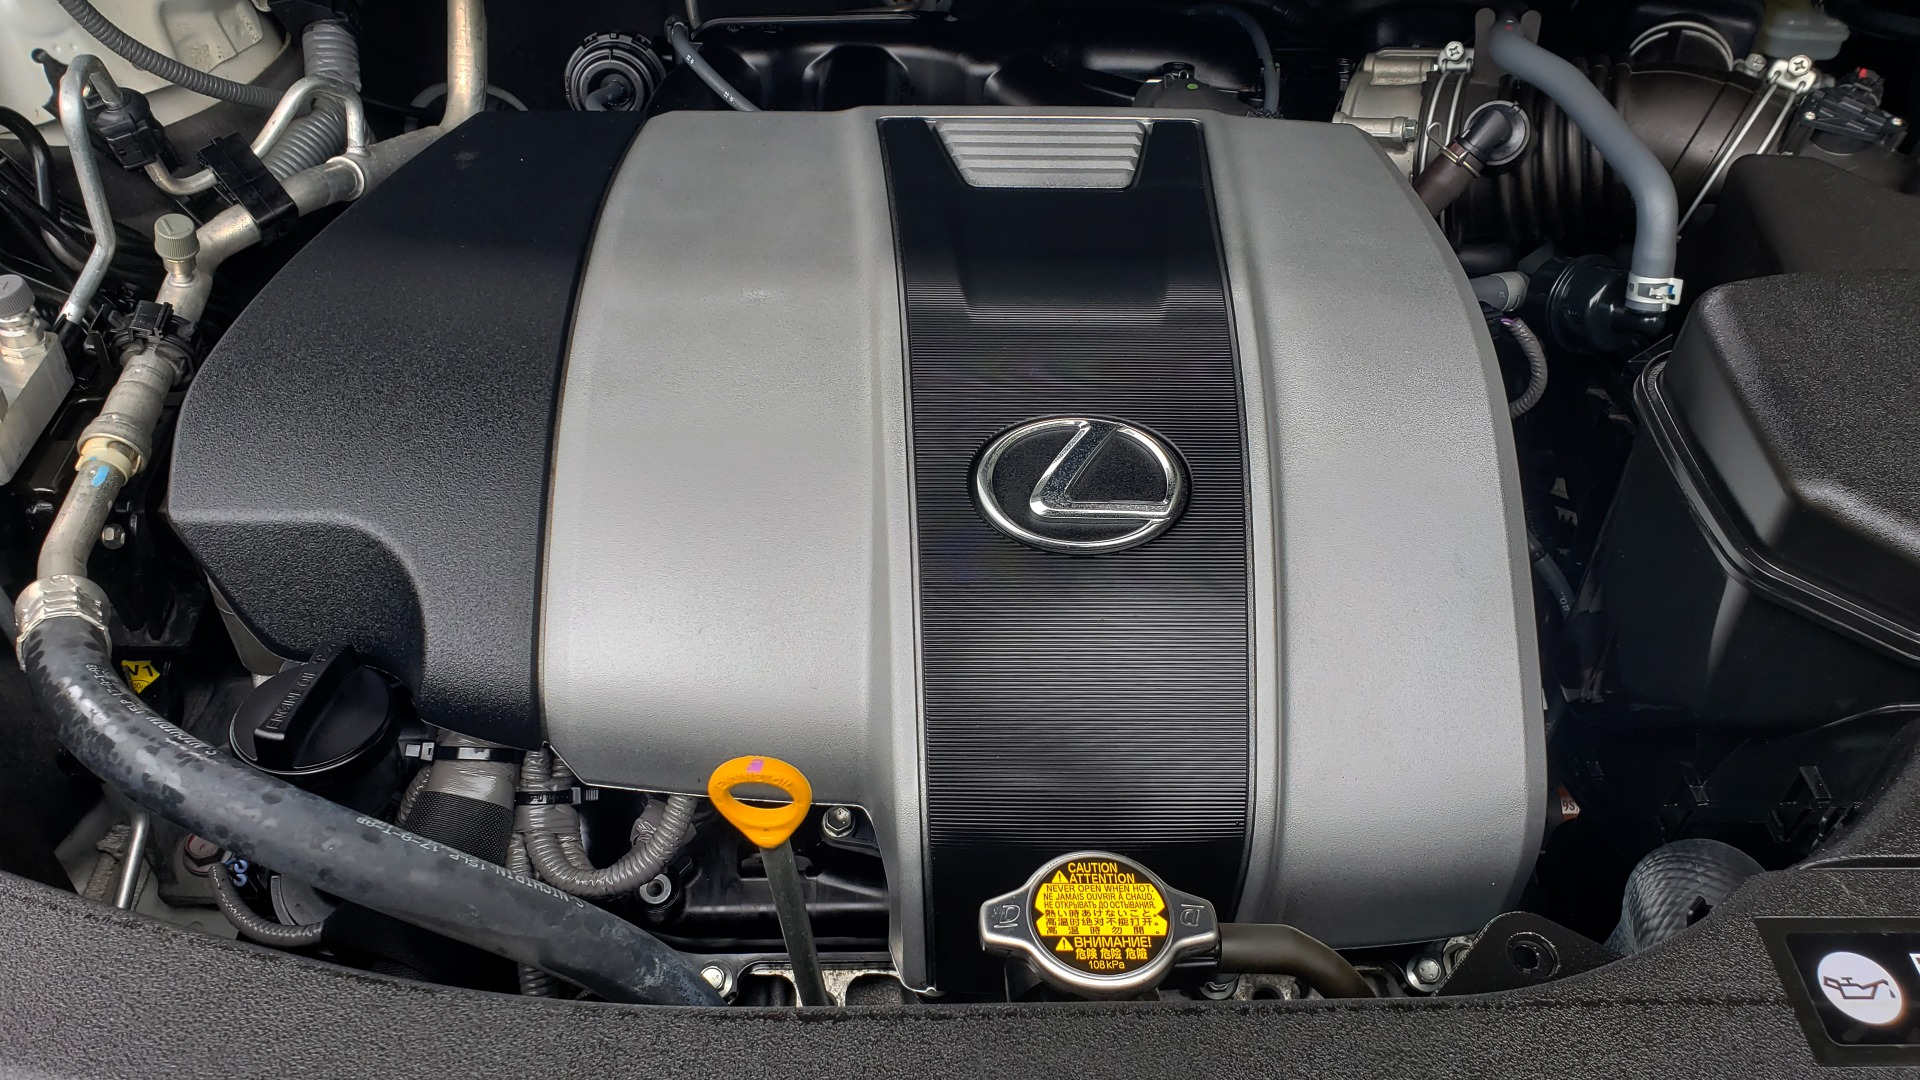 Used 2016 Lexus RX 350 FWD / 4-DR / 3.5L V6 / 8-SPD AUTO / LEATHER / REARVIEW for sale $29,795 at Formula Imports in Charlotte NC 28227 13